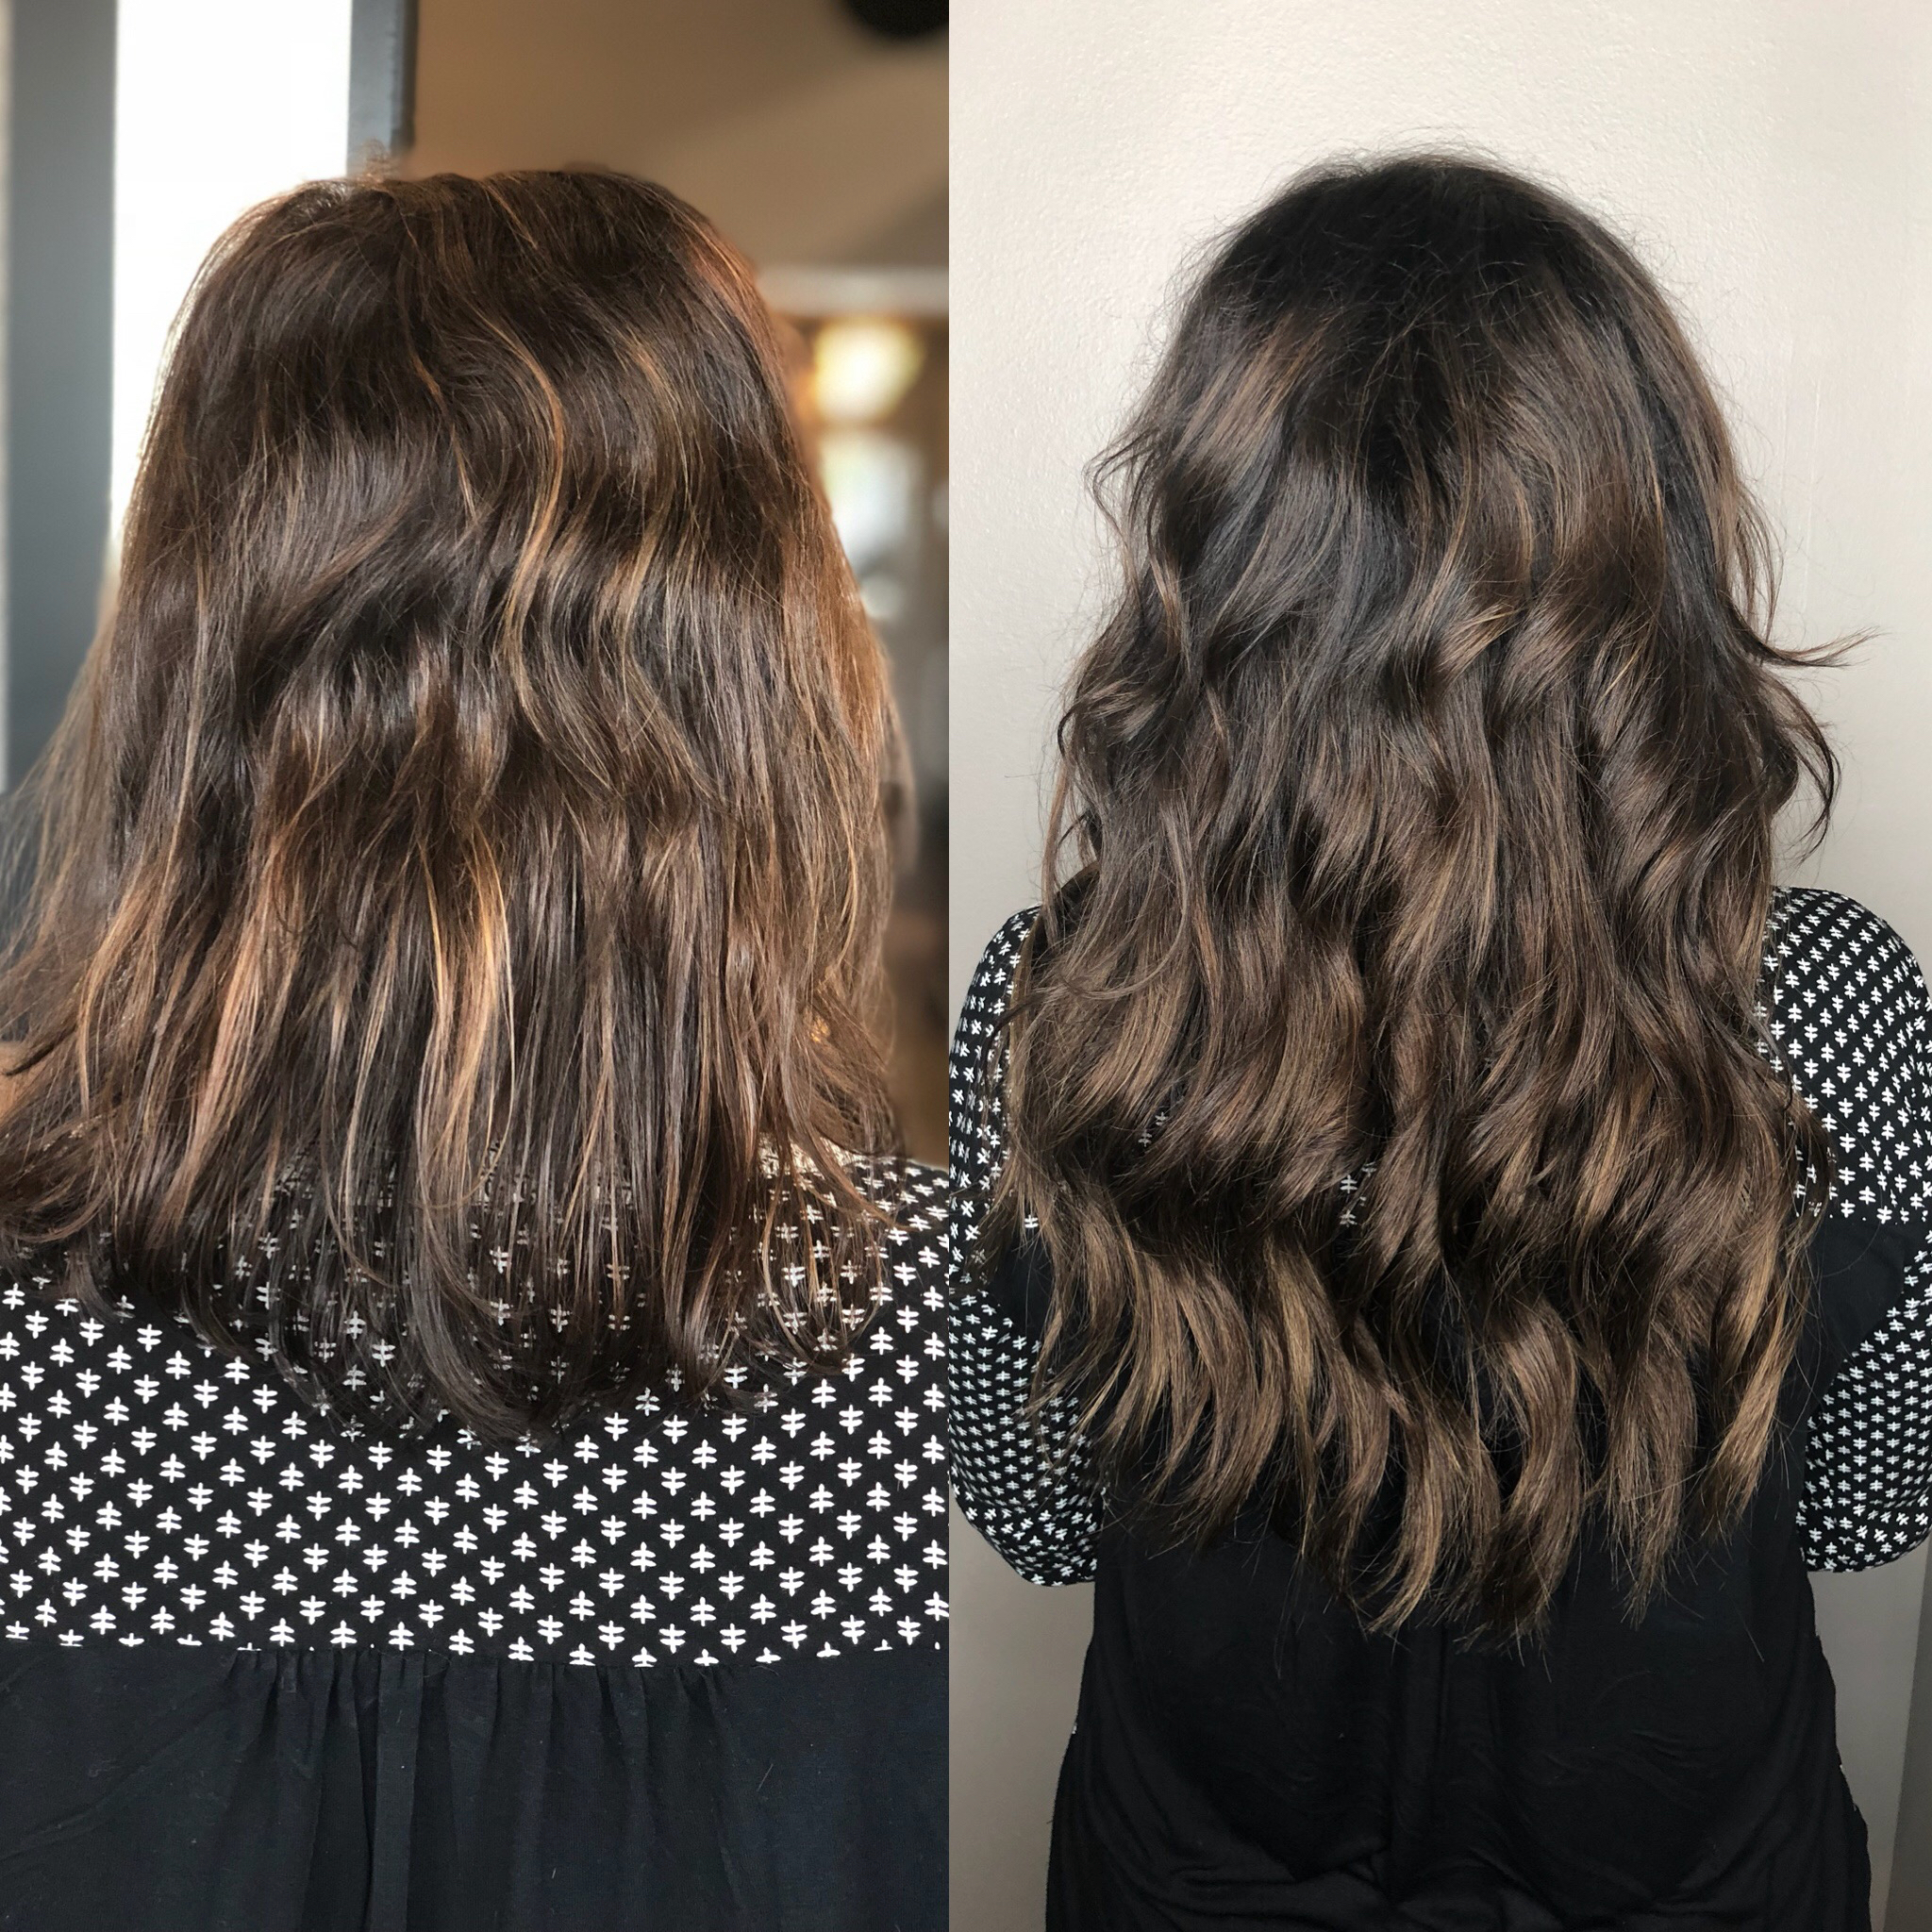 Natural Beaded Rows Kansas City Stylist Transformation 1